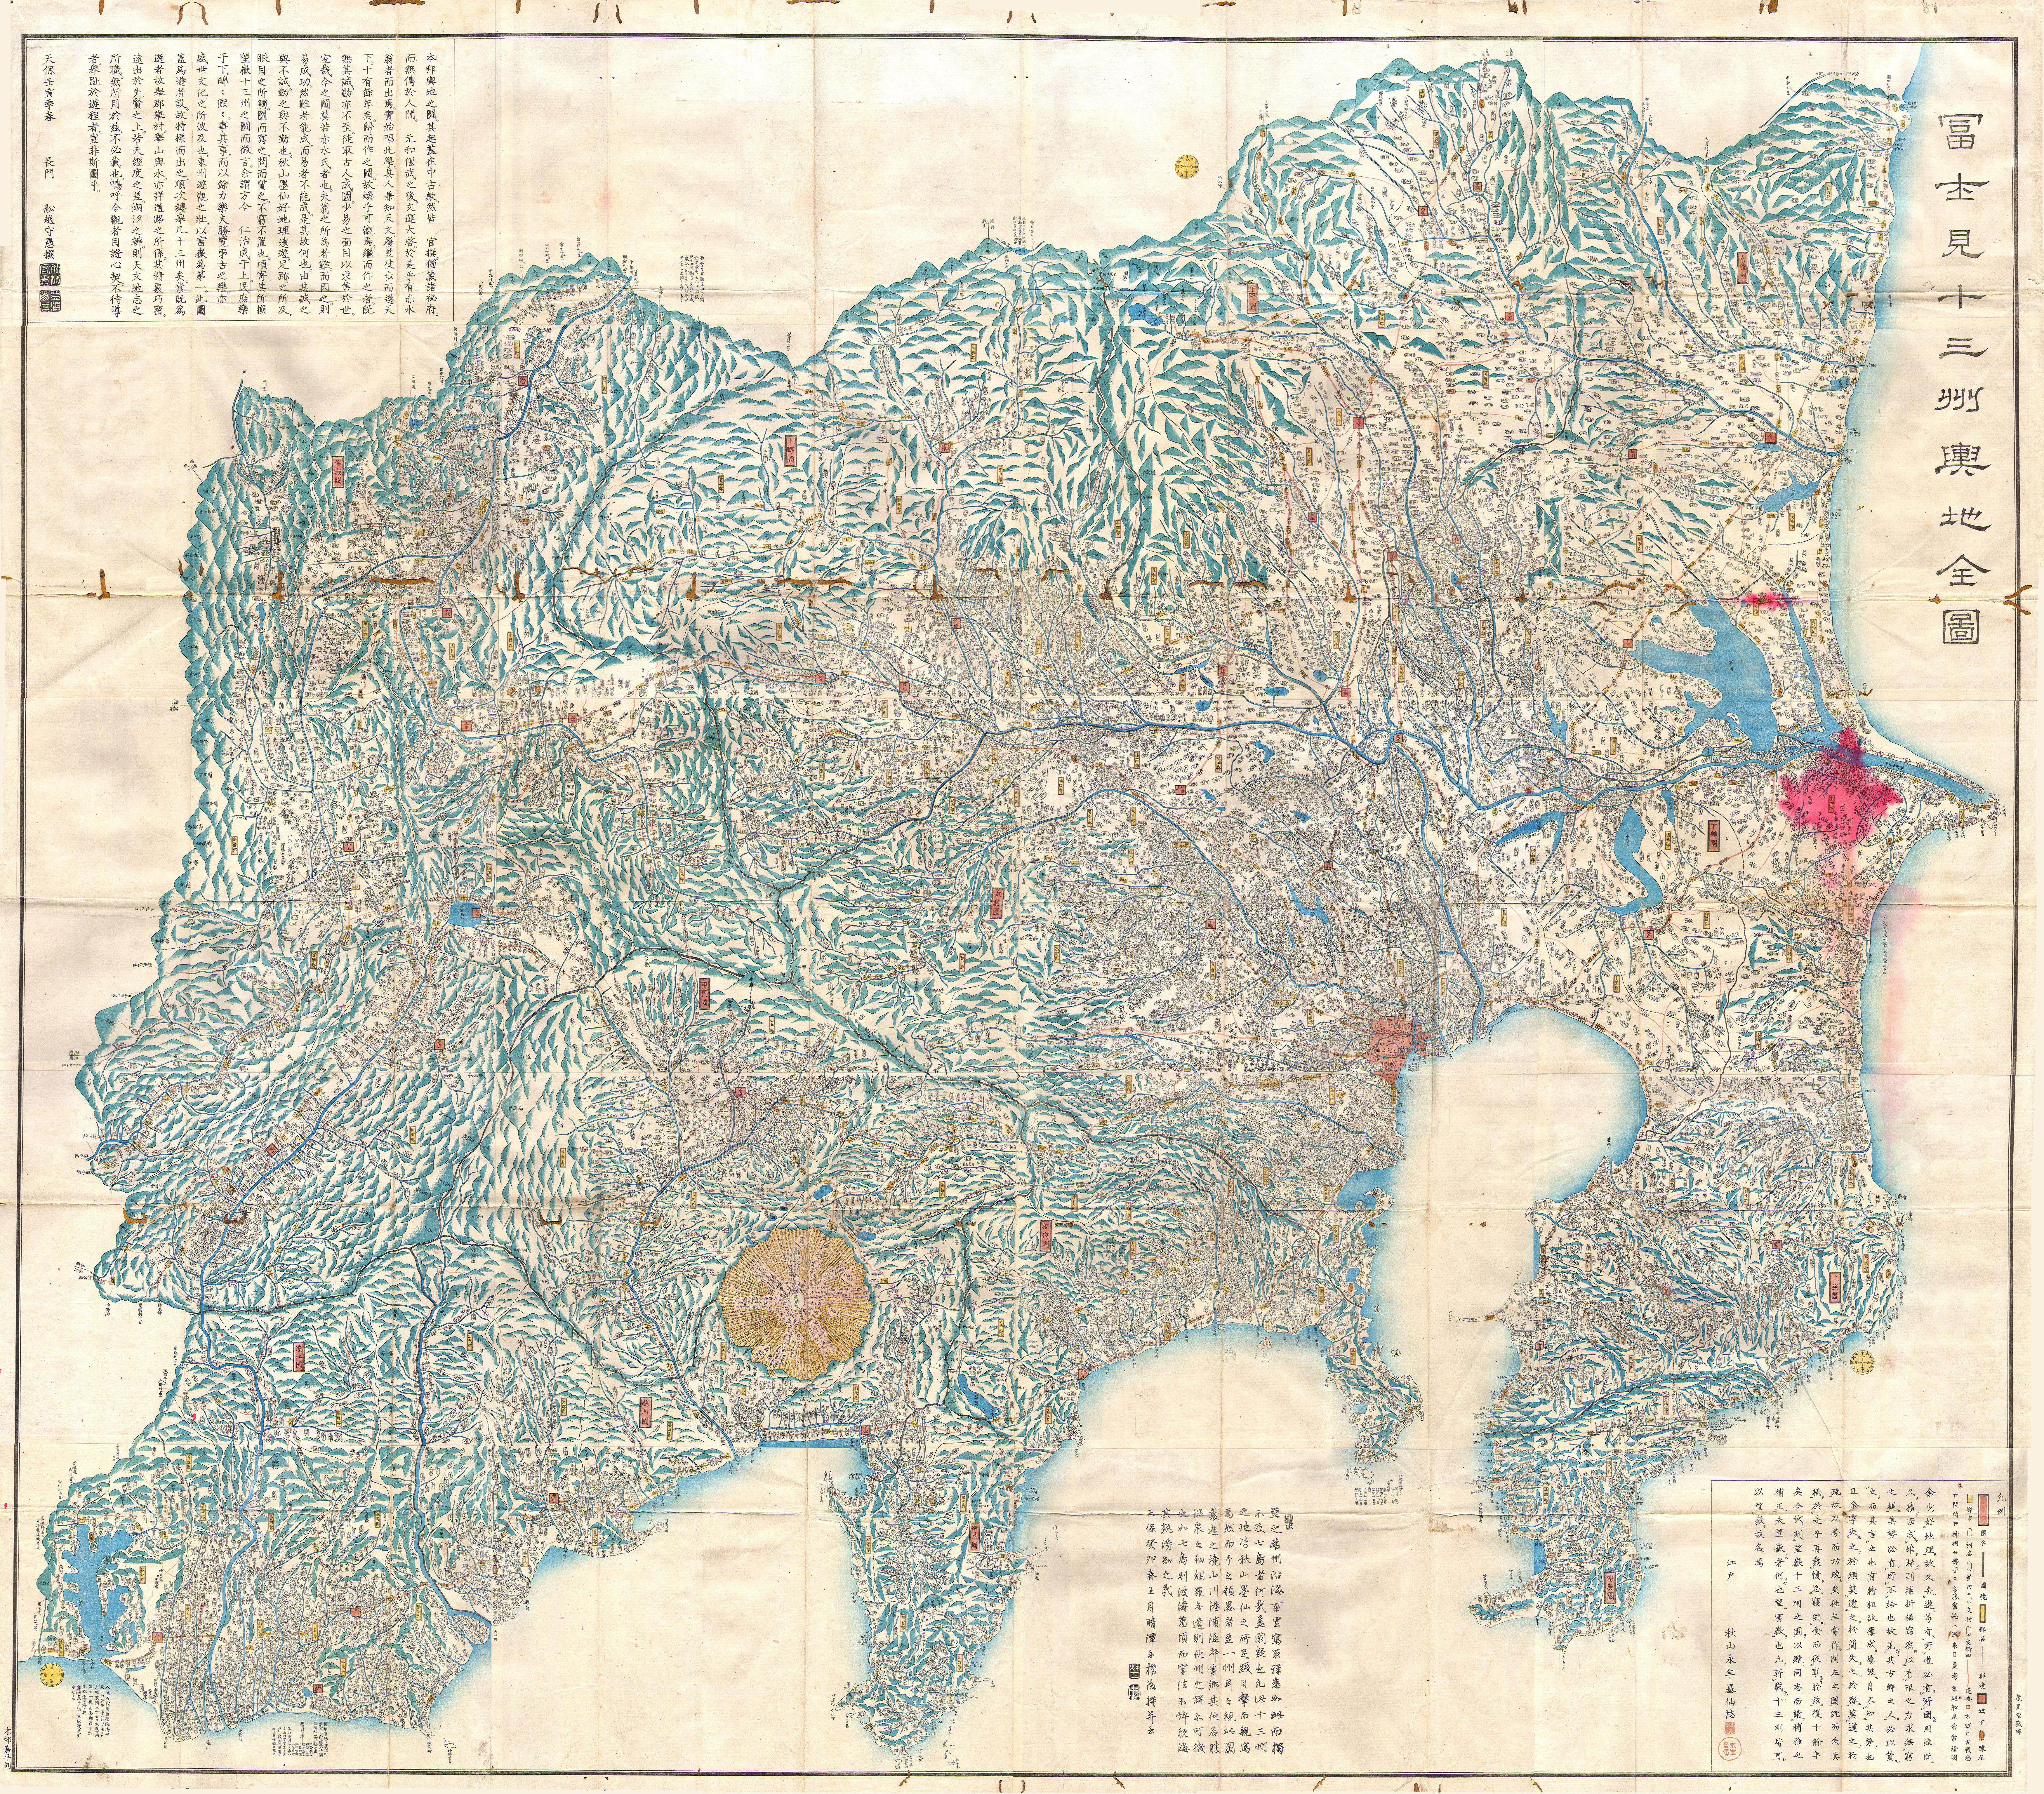 File Tienpo Edo Period Map Of Mt Fuji Tokyo And - Map of mt